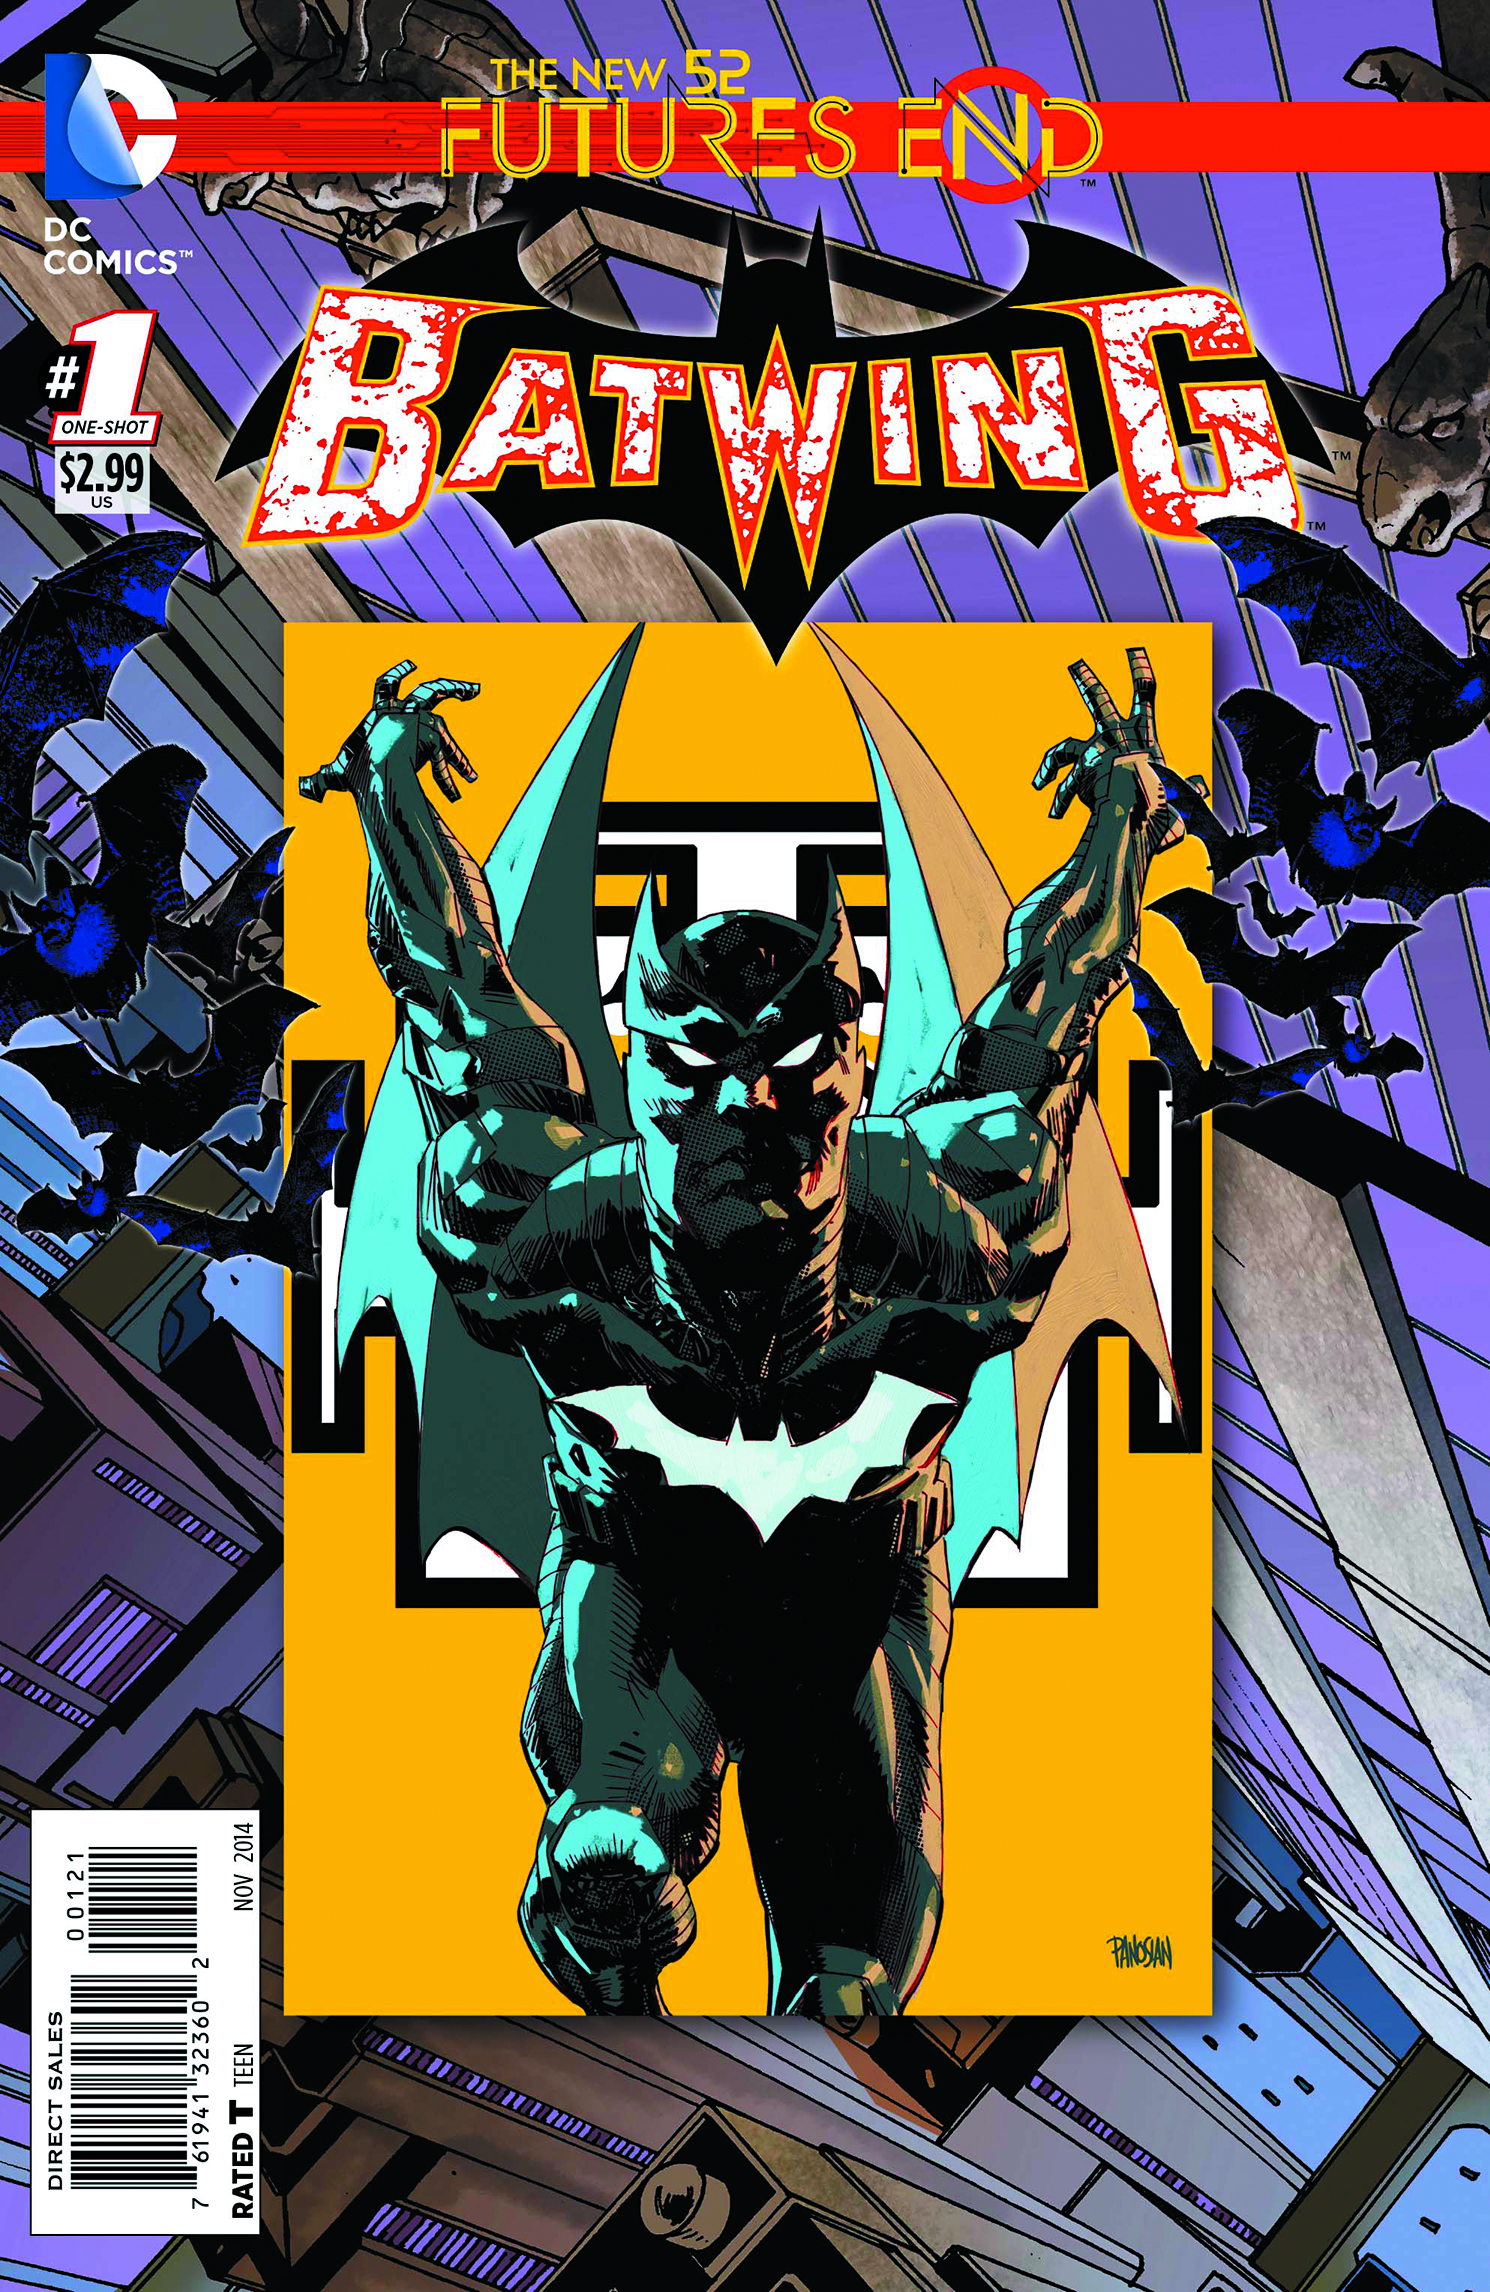 BATWING FUTURES END #1 STANDARD ED